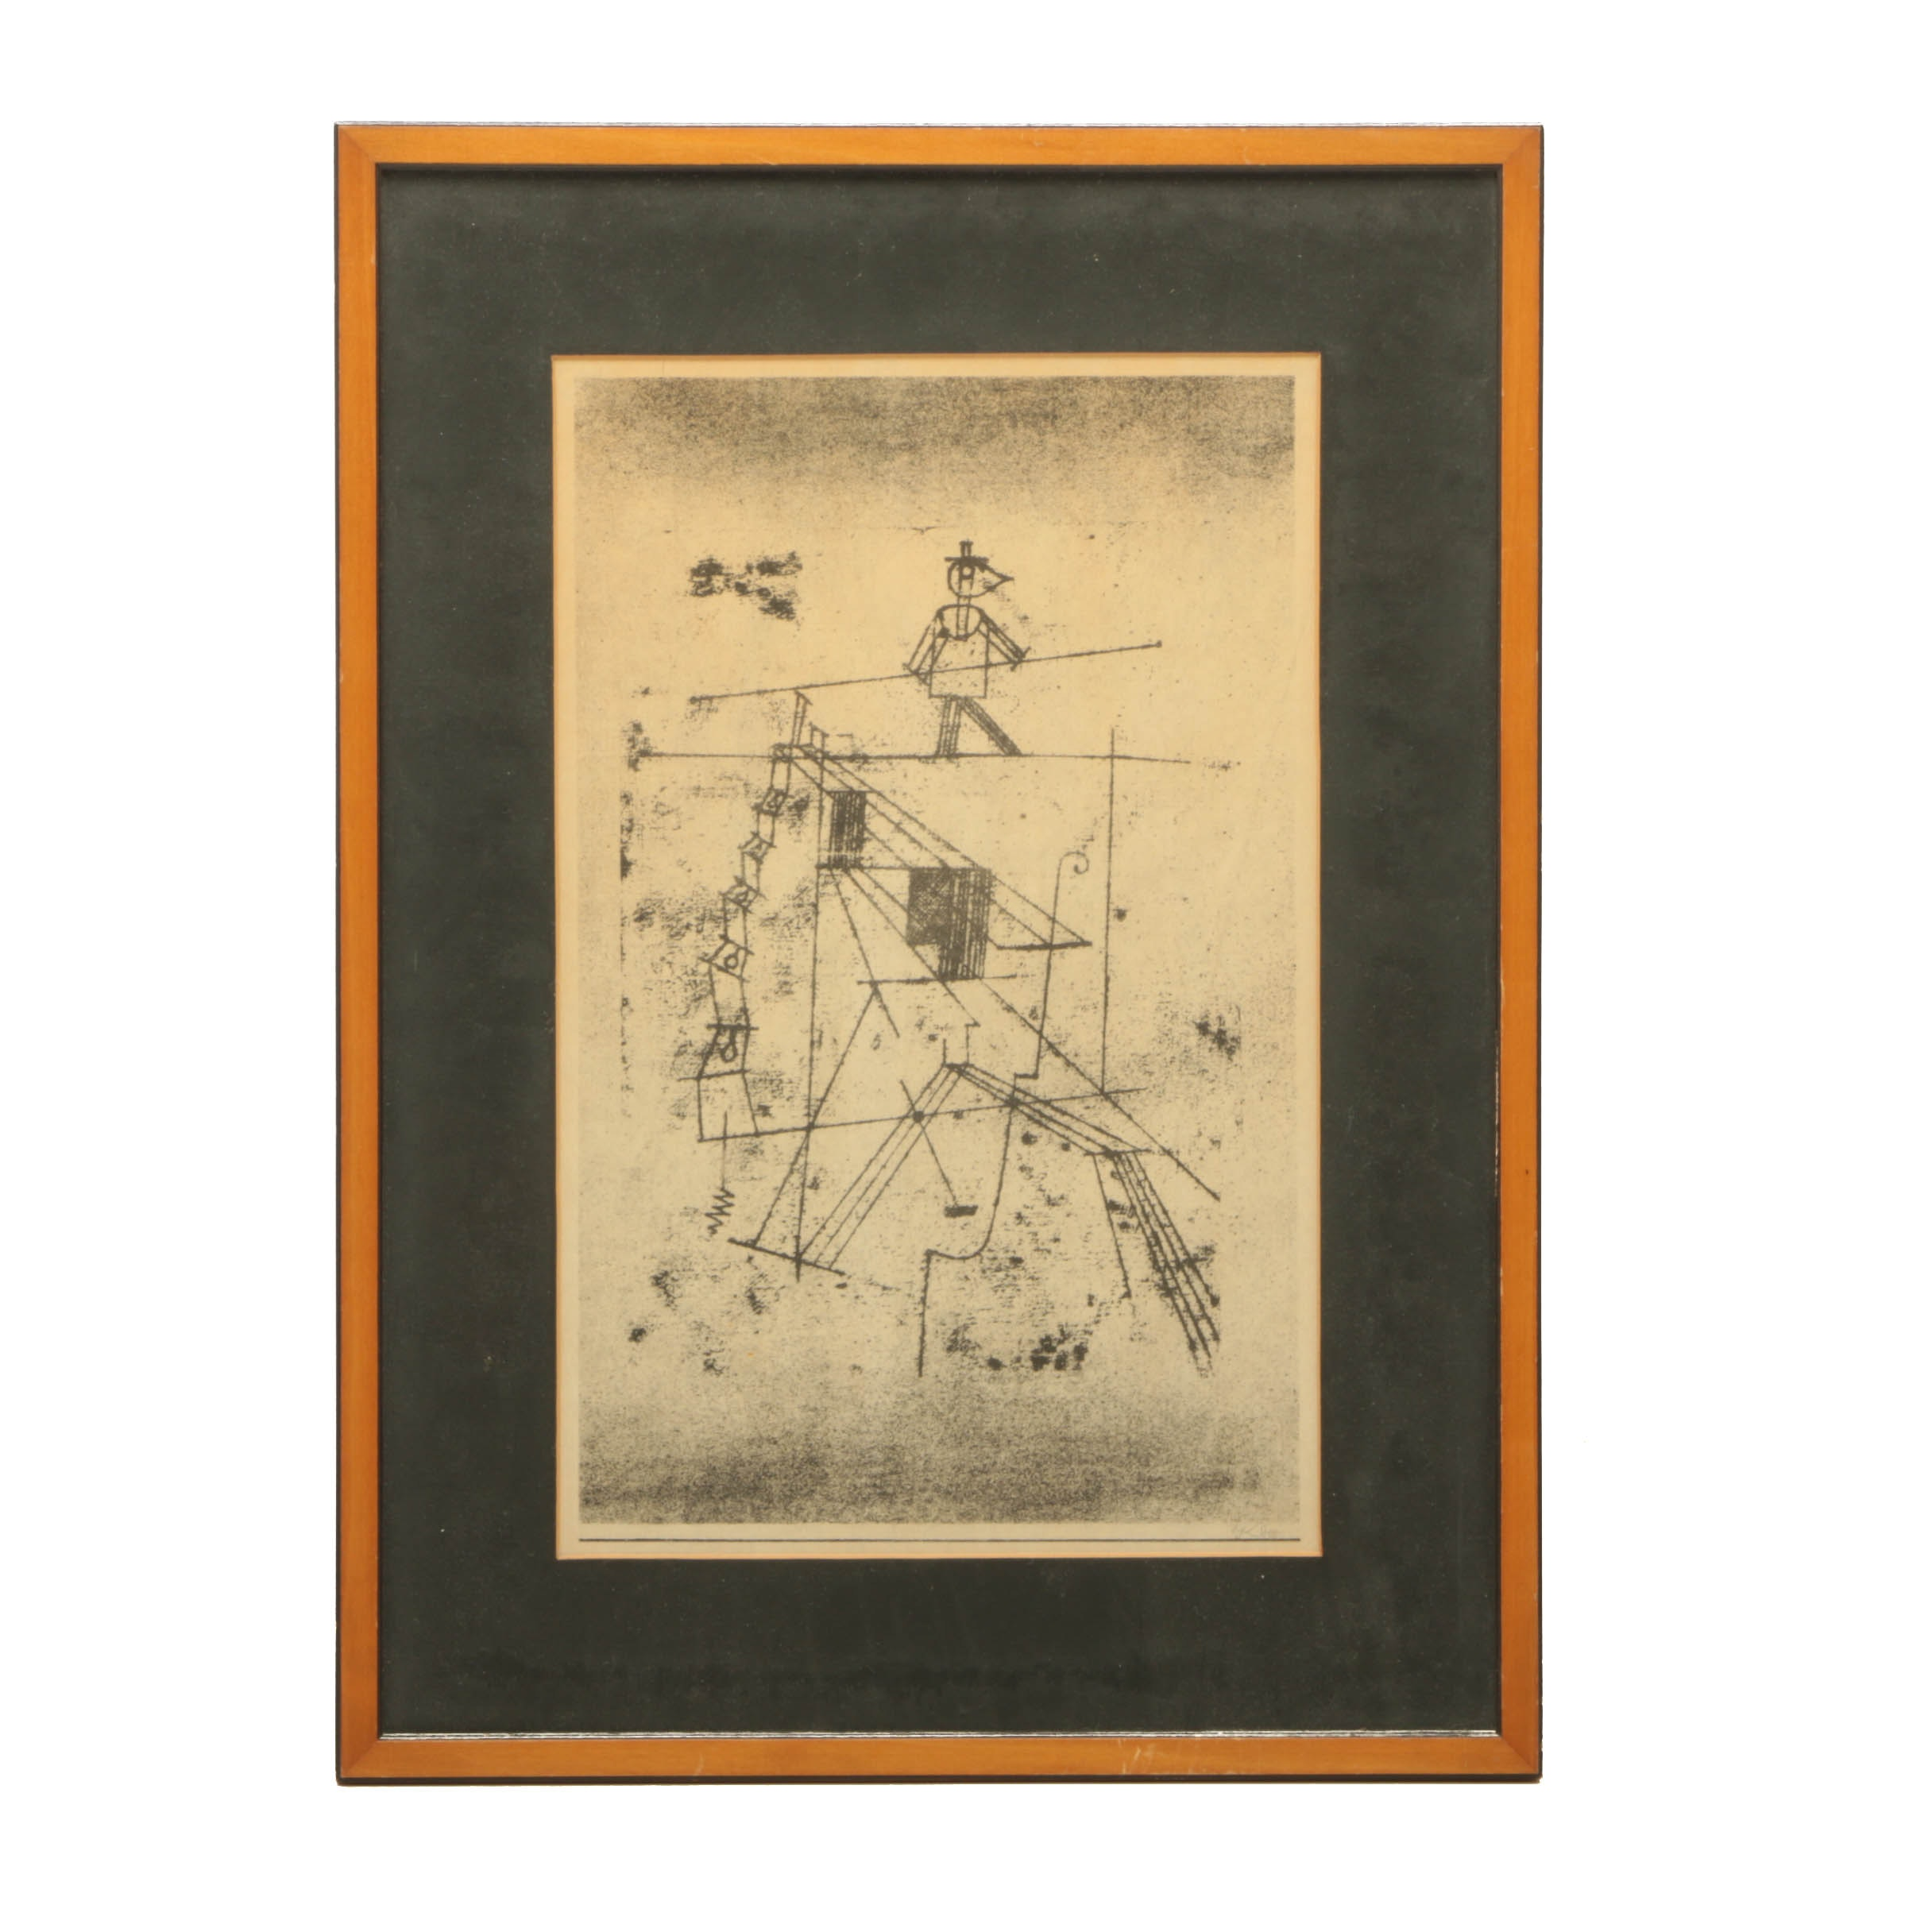 """Reproduction Lithograph after Paul Klee """"Seiltänzer (Tightrope Walker)"""""""